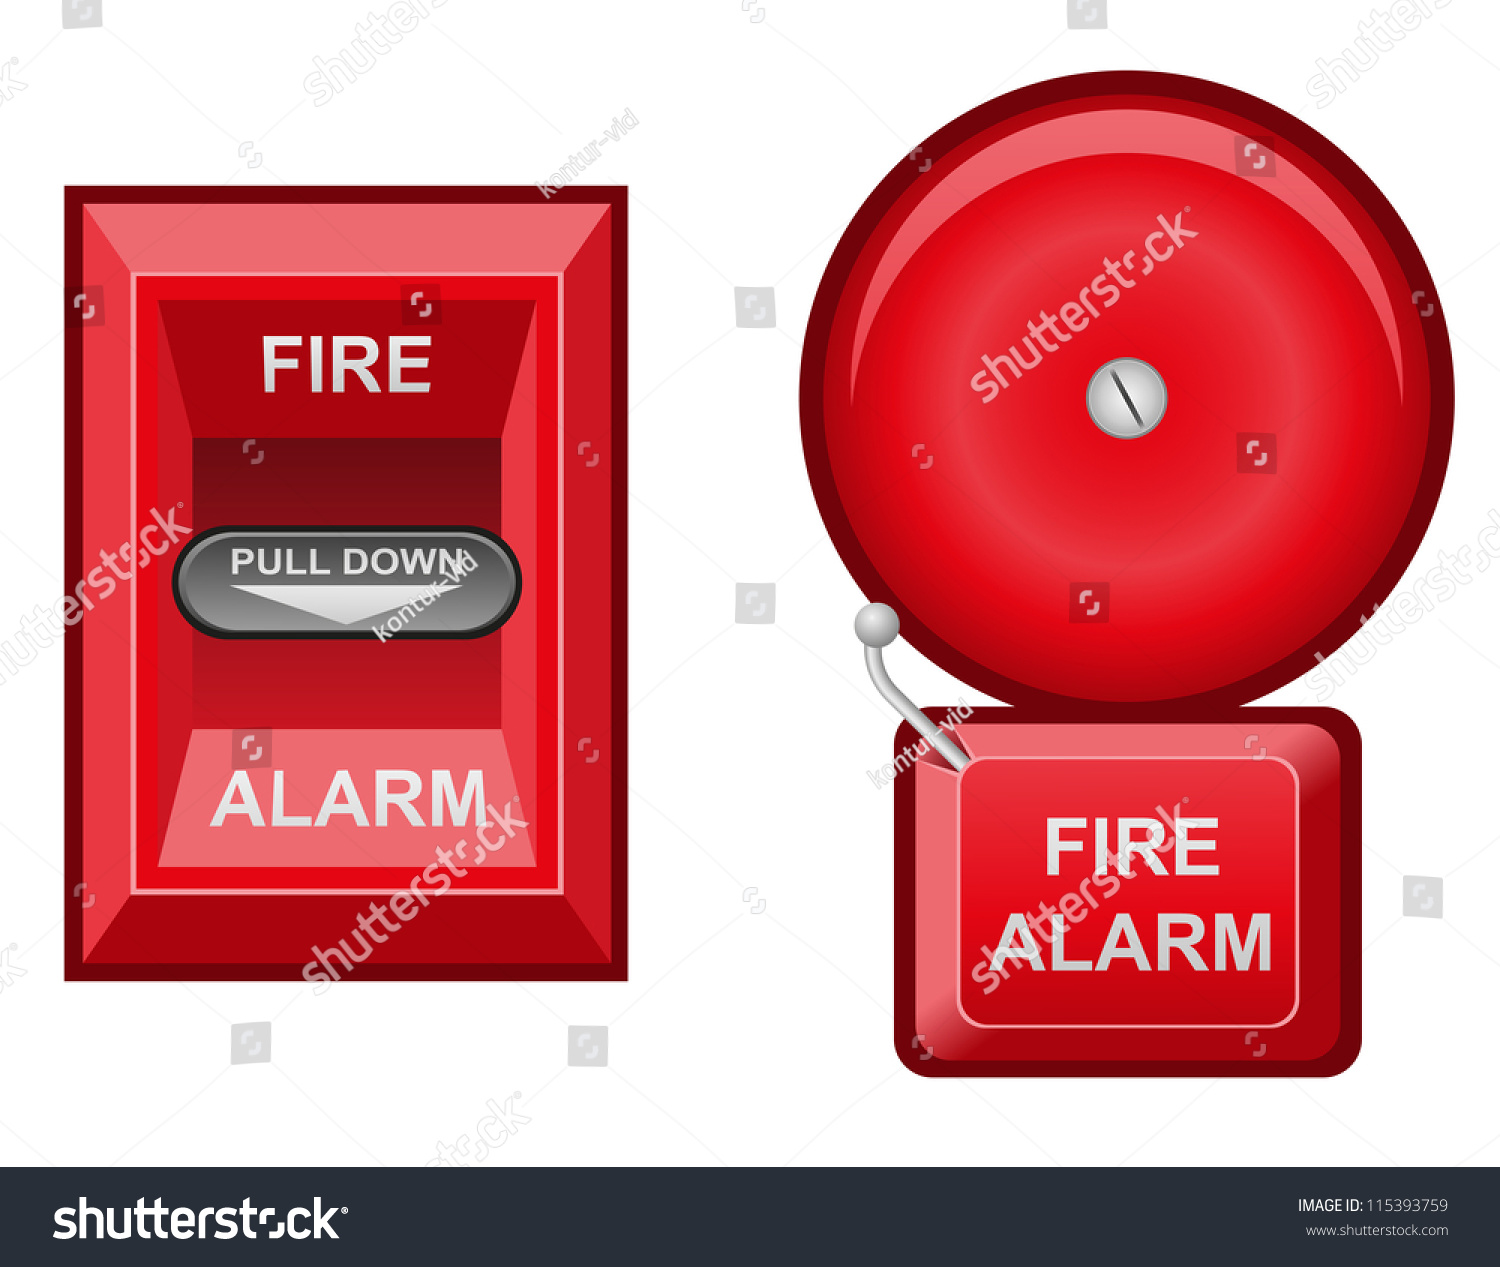 Watch likewise 371204 in addition Preview Design 20elements 20  20Alarm 20and 20access 20control as well Fire Alarm Diagram Symbols besides Notifier Pull Station Nbg 12lx. on fire alarm horn strobe symbol